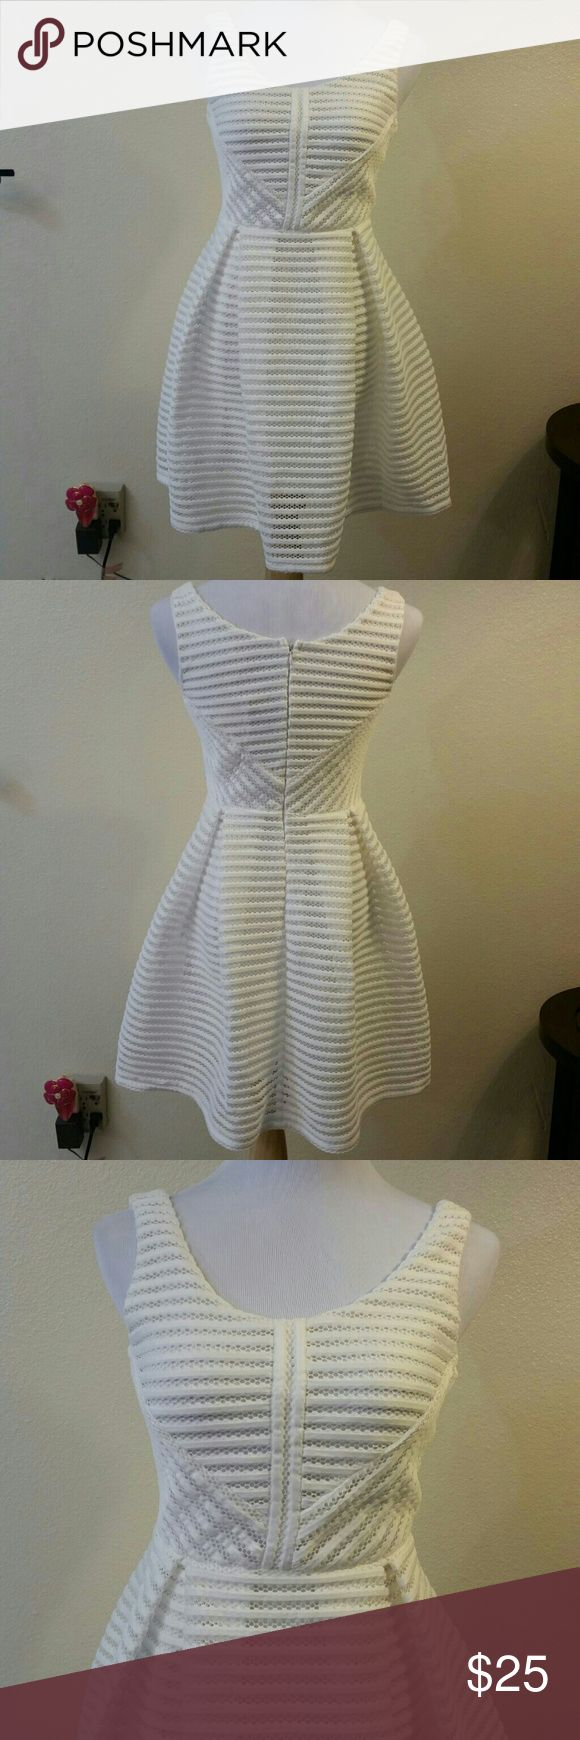 """Vera & Lucy White Skater Dress Brand new adorable """"boutique Sarah structured skater dress"""" for Vera & Lucy. Zipper in the back and it's about 33"""" long. Vera & Lucy Dresses"""